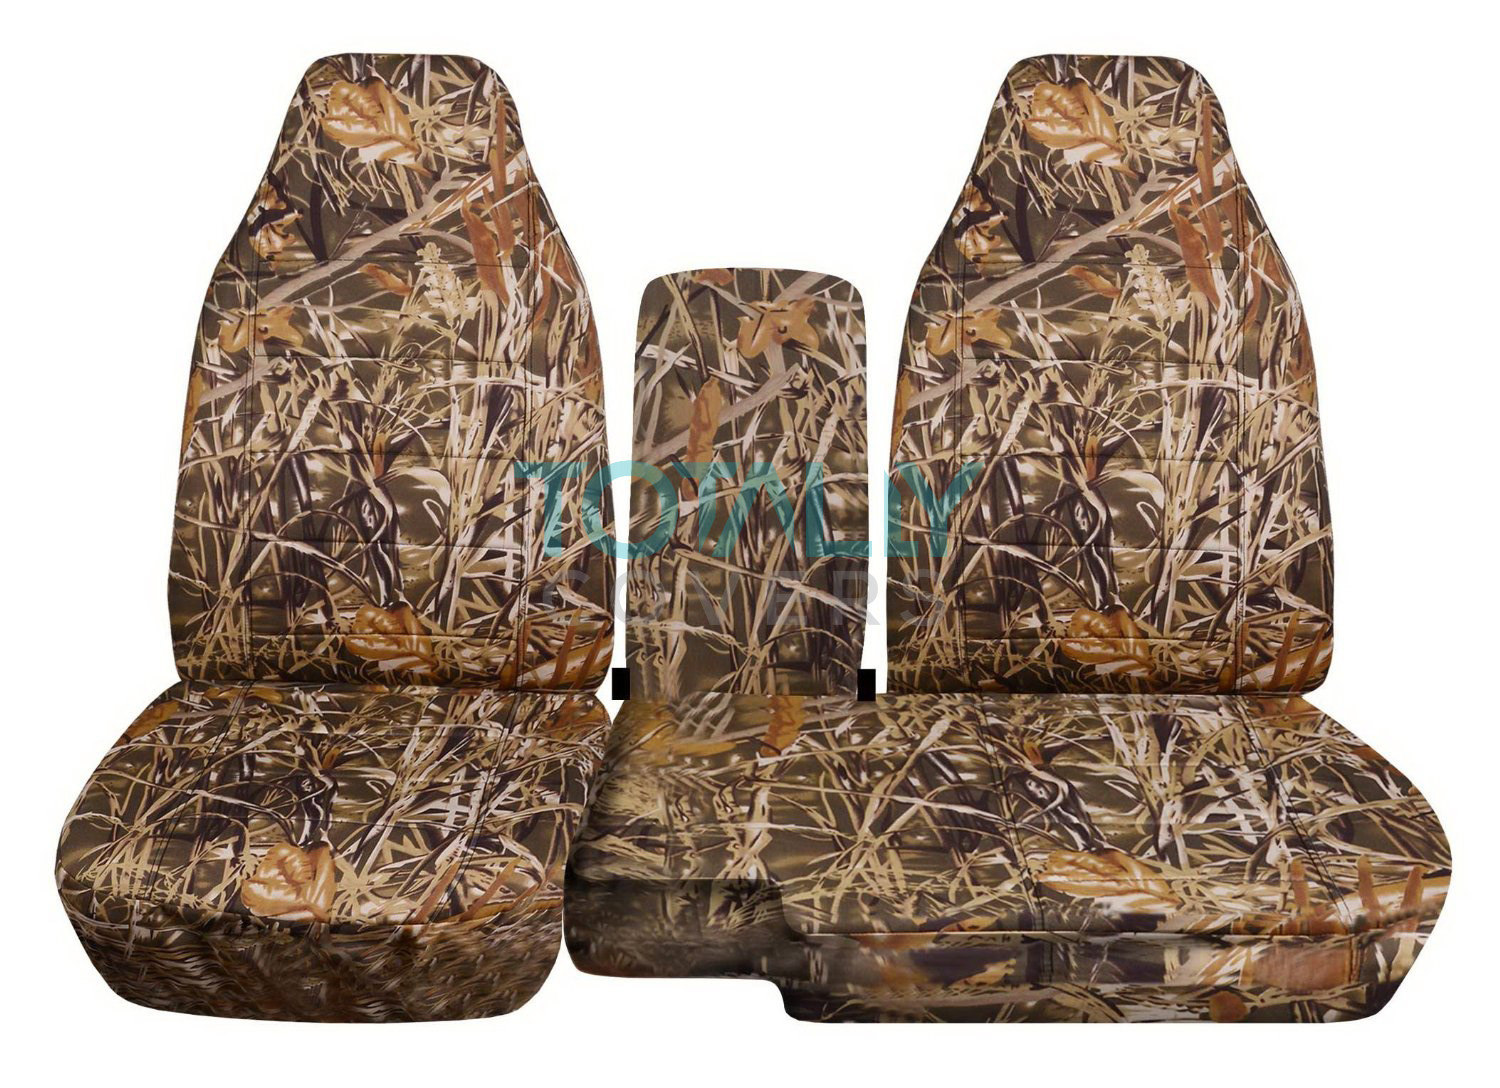 Pleasing Details About 1991 2012 Ford Ranger 60 40 Camo Truck Seat Covers W Console Armrest Split Bench Lamtechconsult Wood Chair Design Ideas Lamtechconsultcom